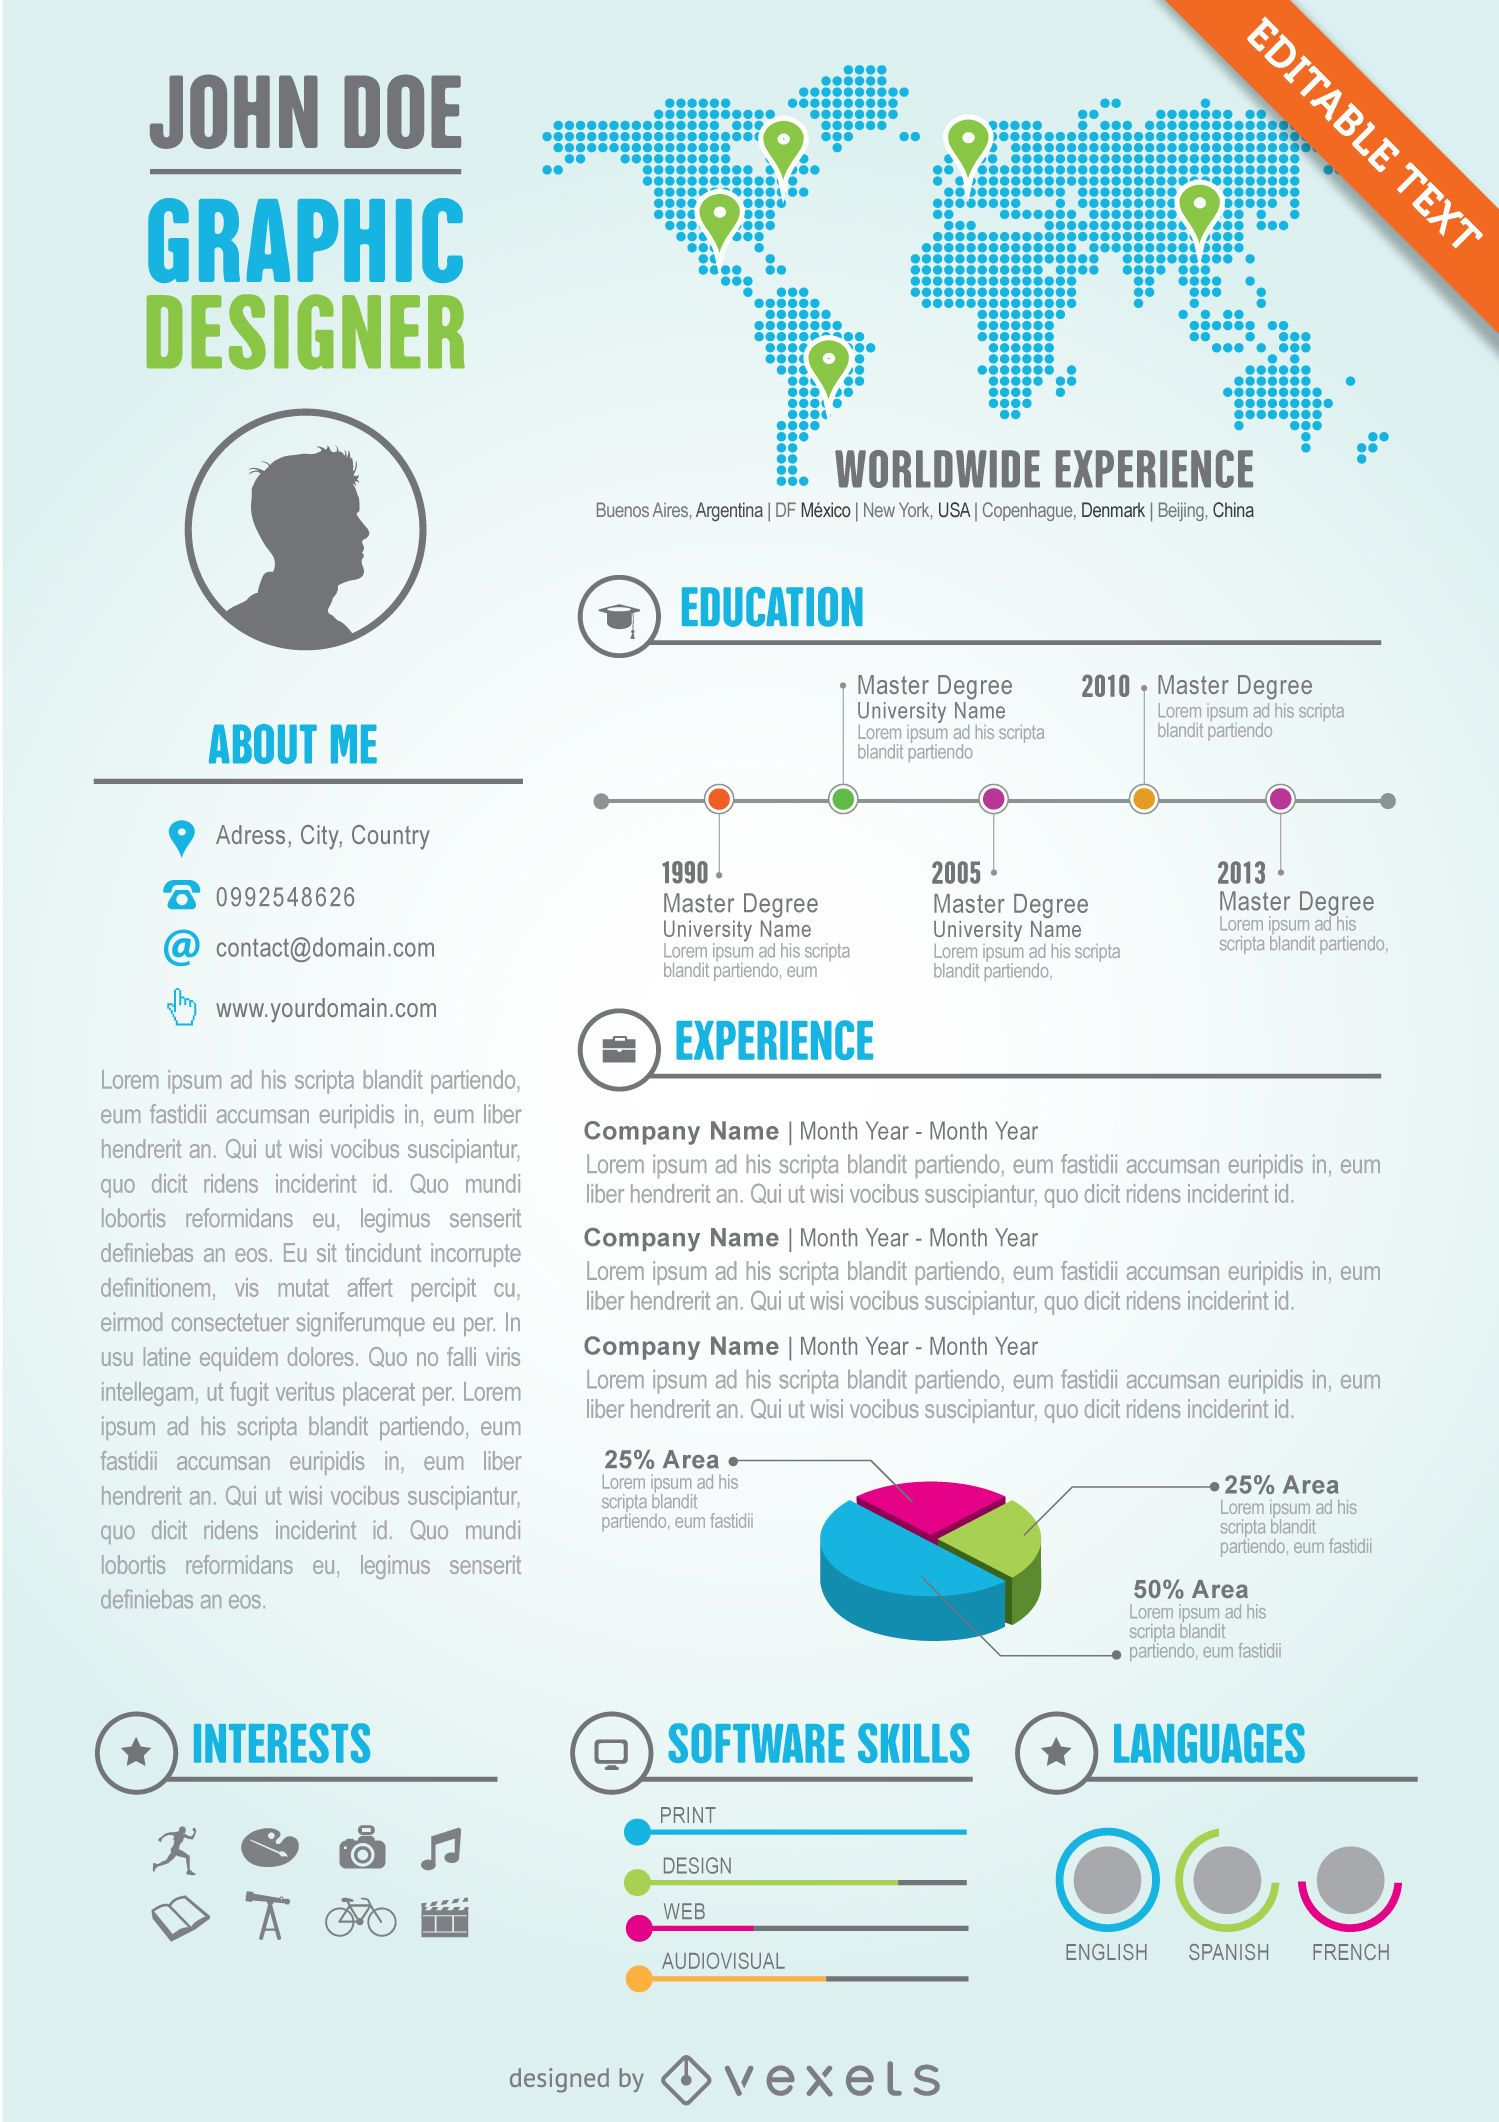 graphic designer editable resume cv template download large image 592x841px